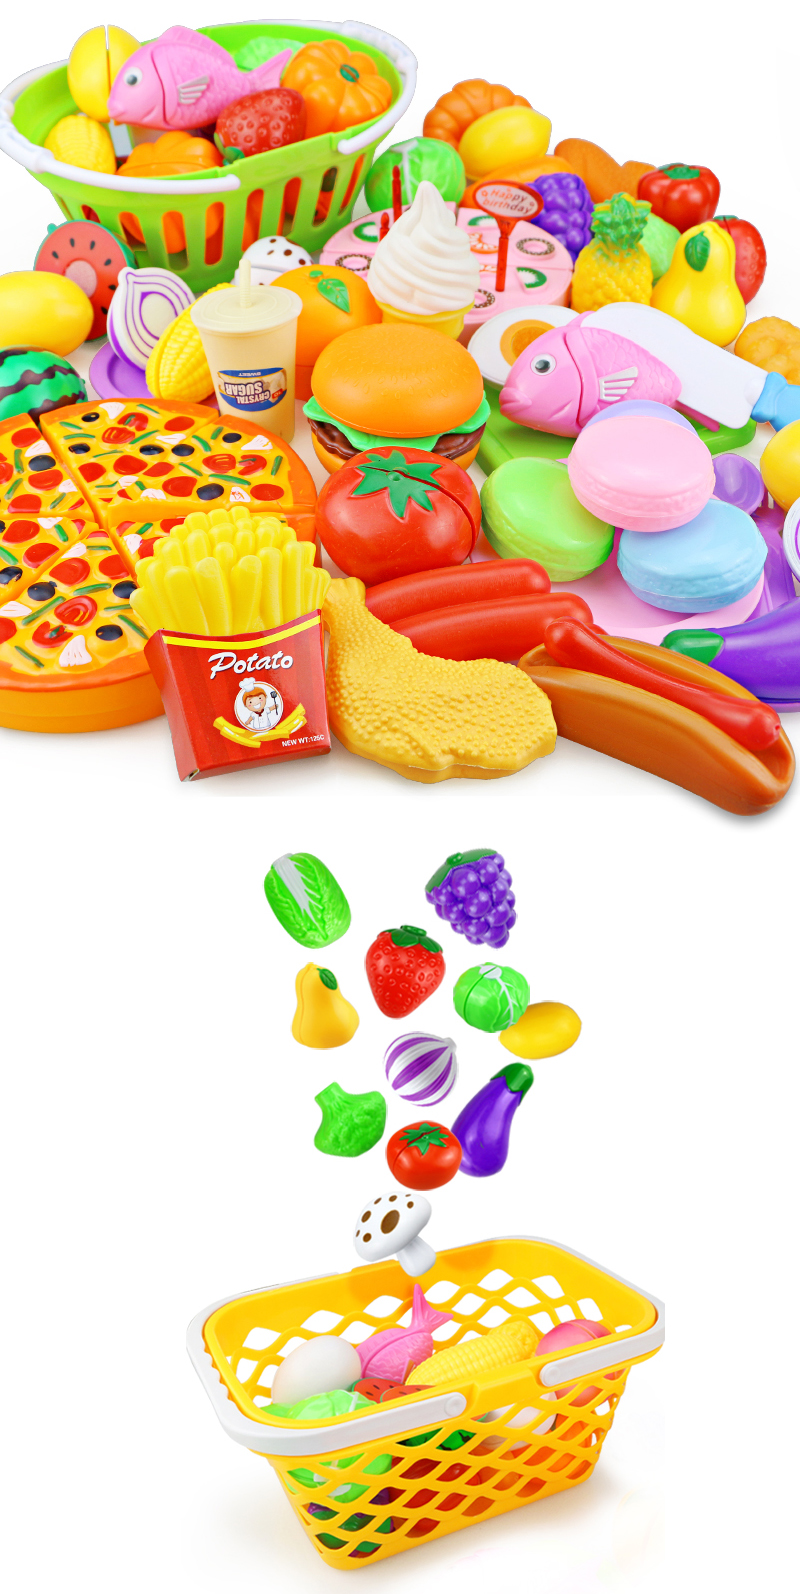 Kitchen Play Fruits and Veggies